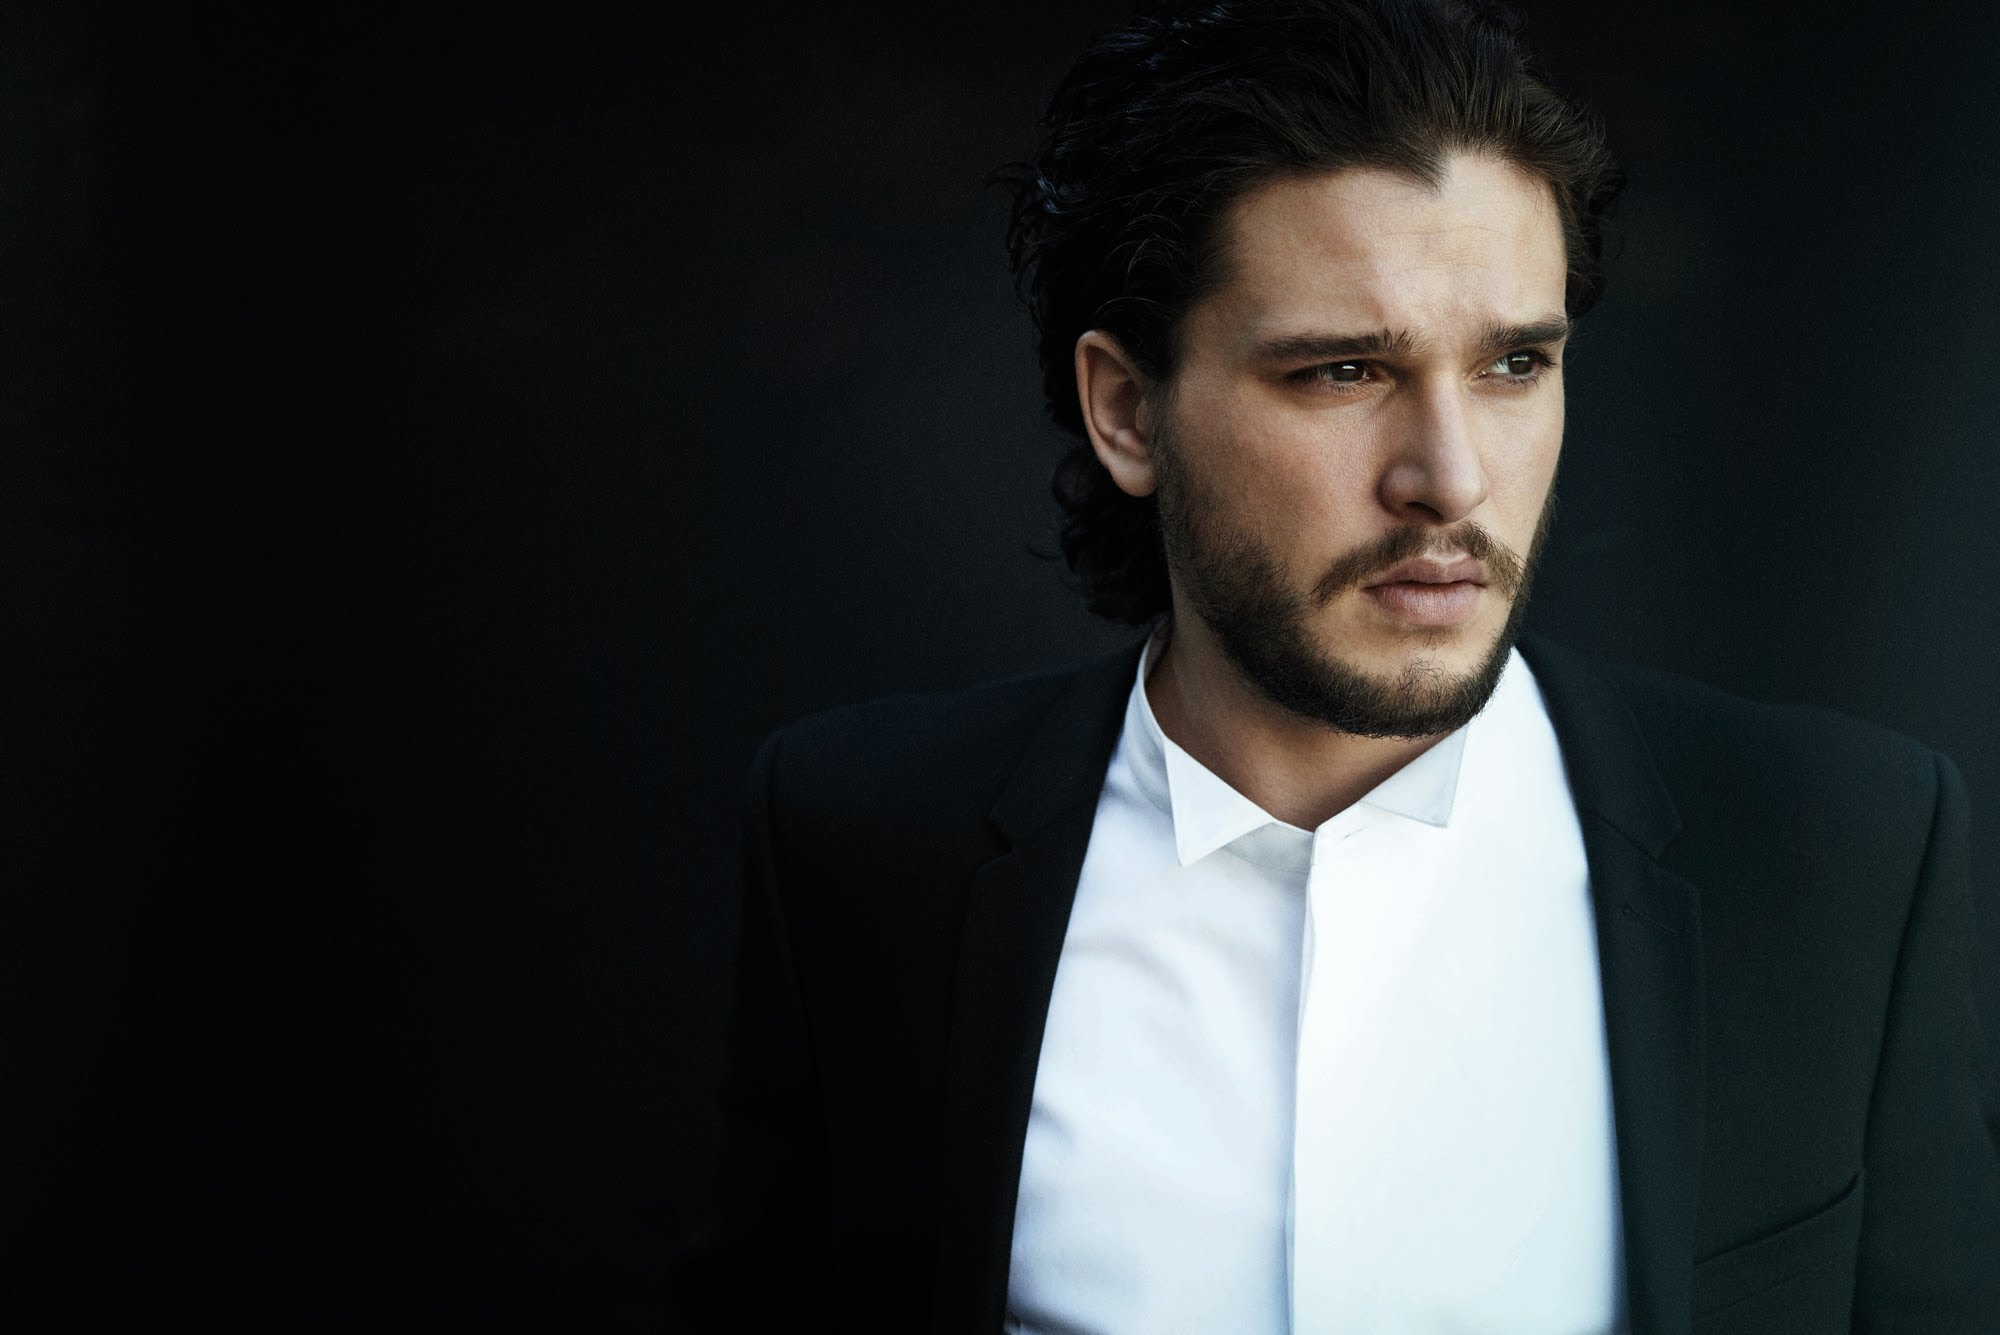 Game of Thrones actor Kit Harington leads disability campaign with help of his cousin | The Independent